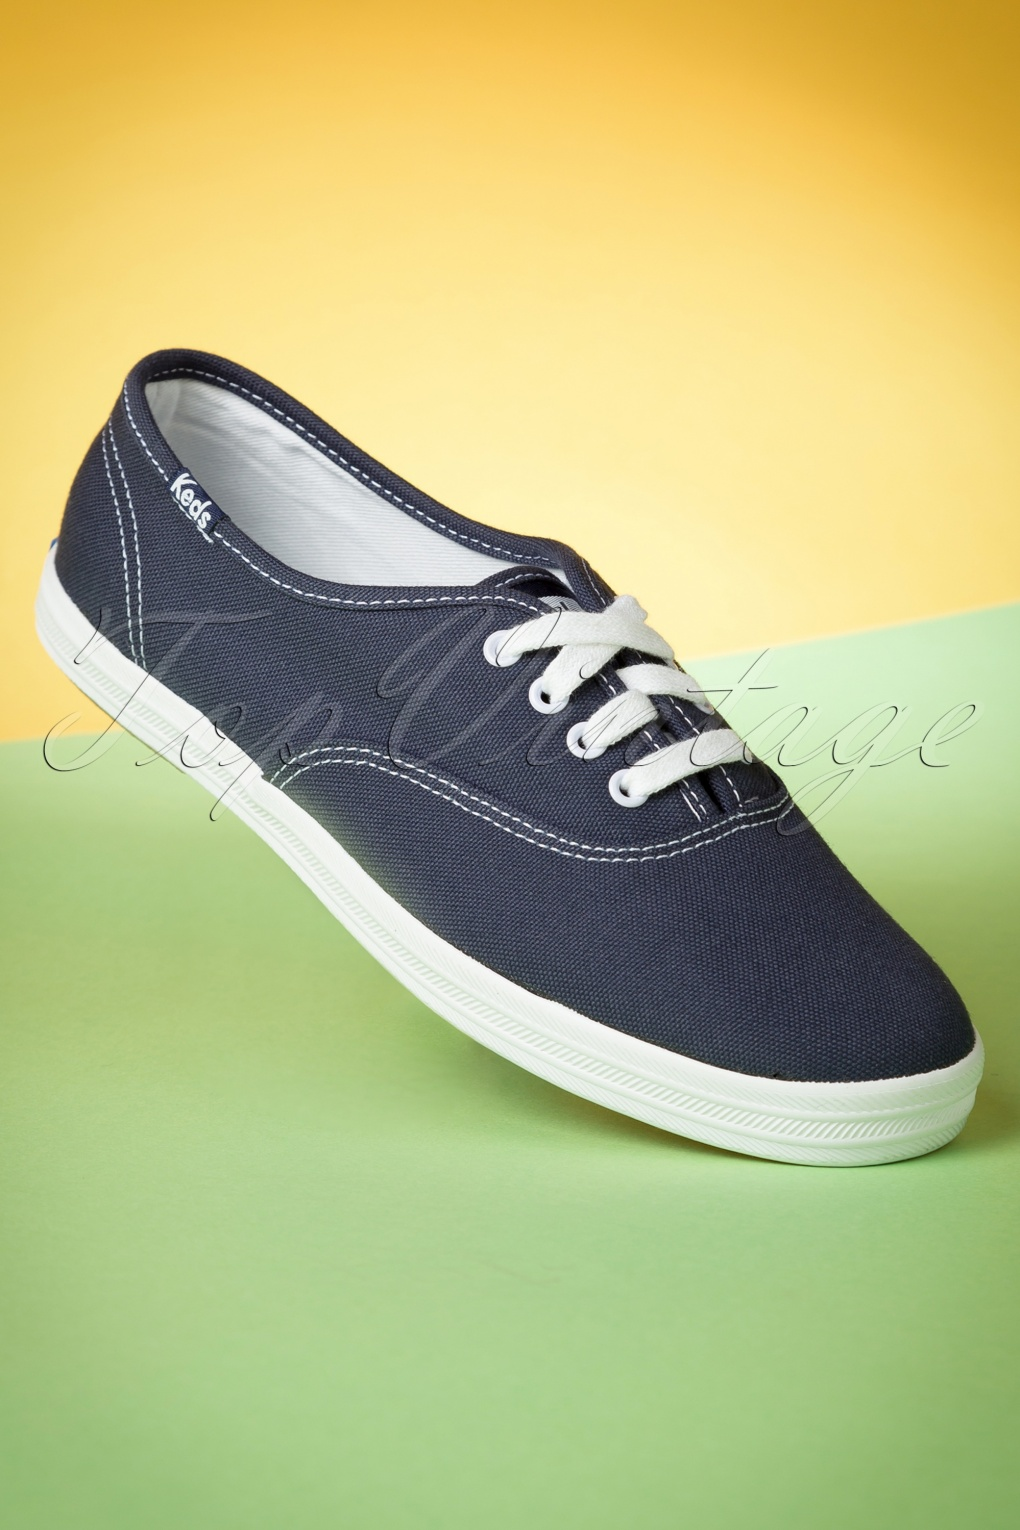 Swing Dance Shoes- Vintage, Lindy Hop, Tap, Ballroom 50s Champion Core Text Sneakers in Navy £52.54 AT vintagedancer.com